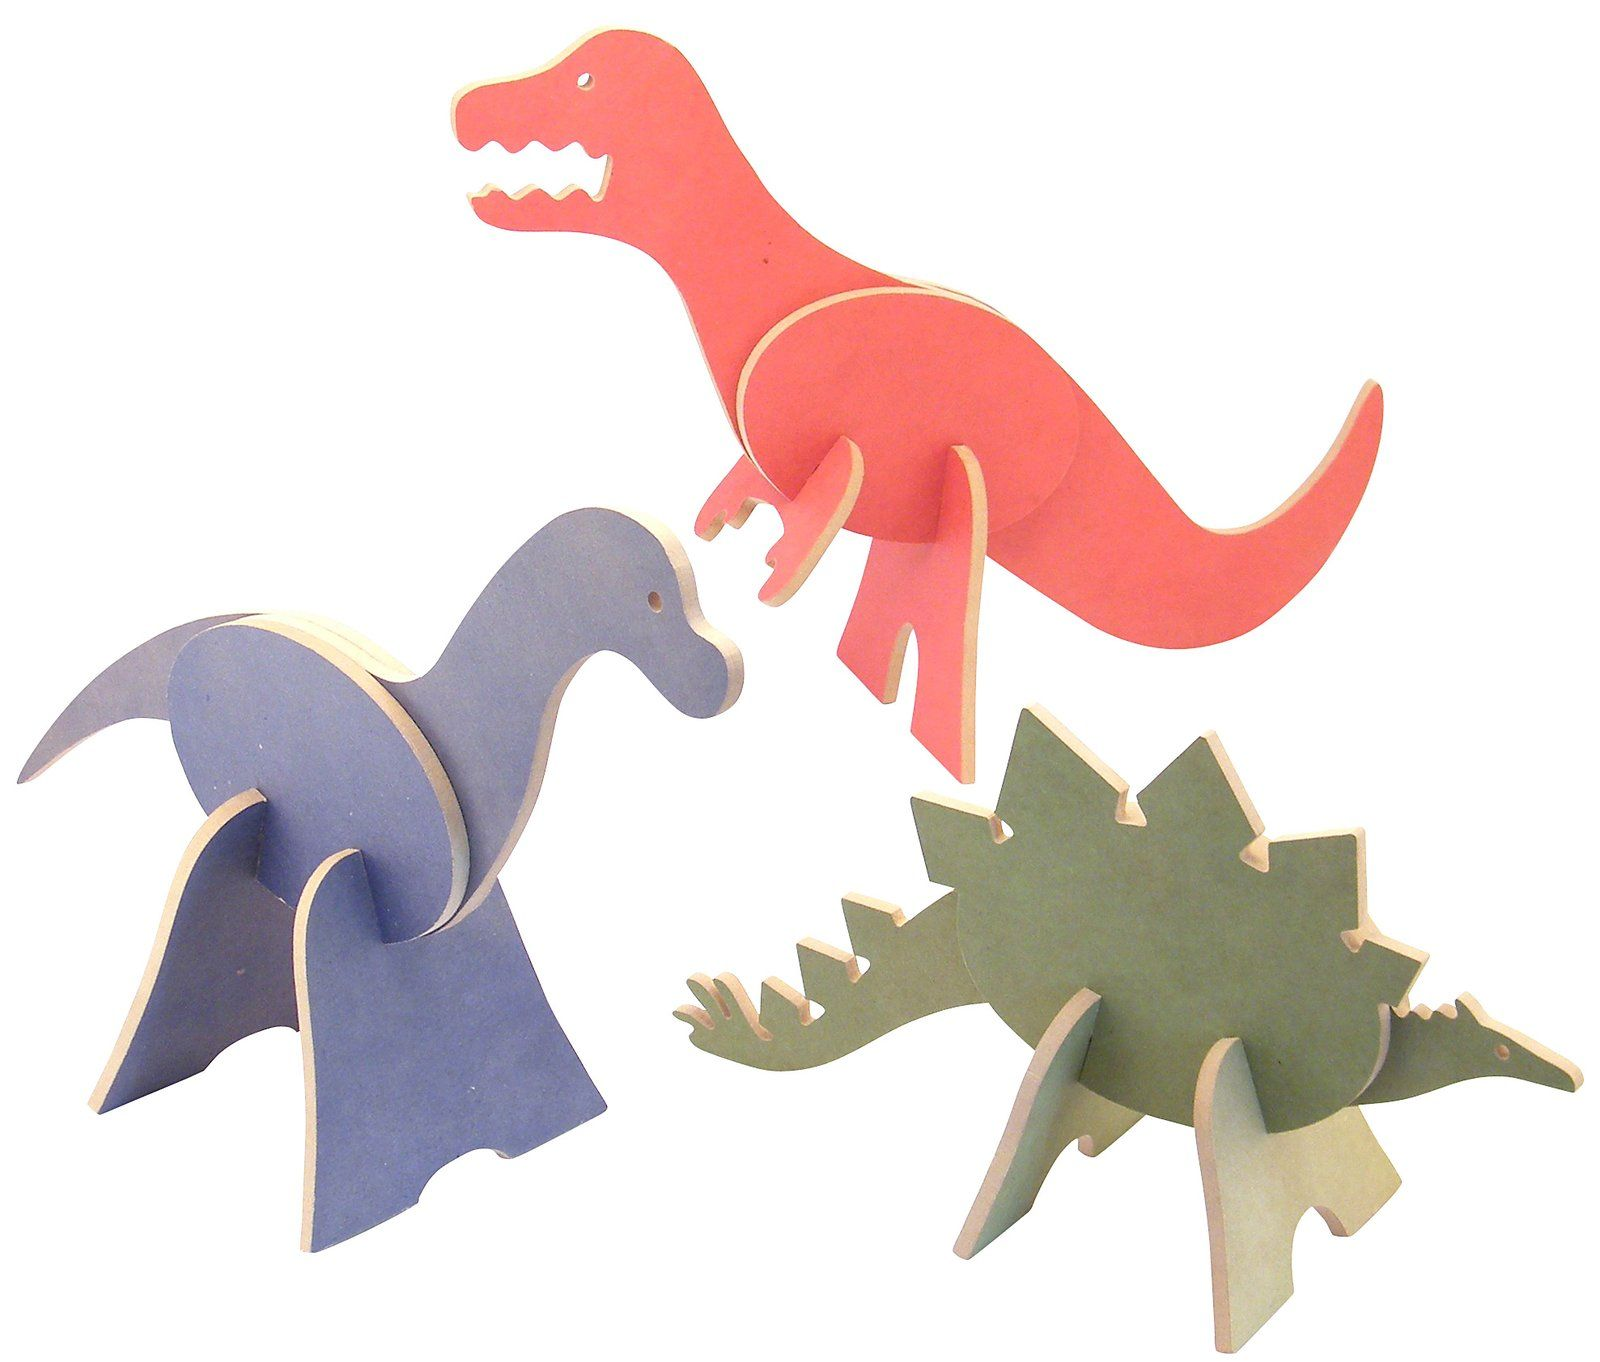 Topozoo Creature Playsets Dinosaurs (15 pcs) Free